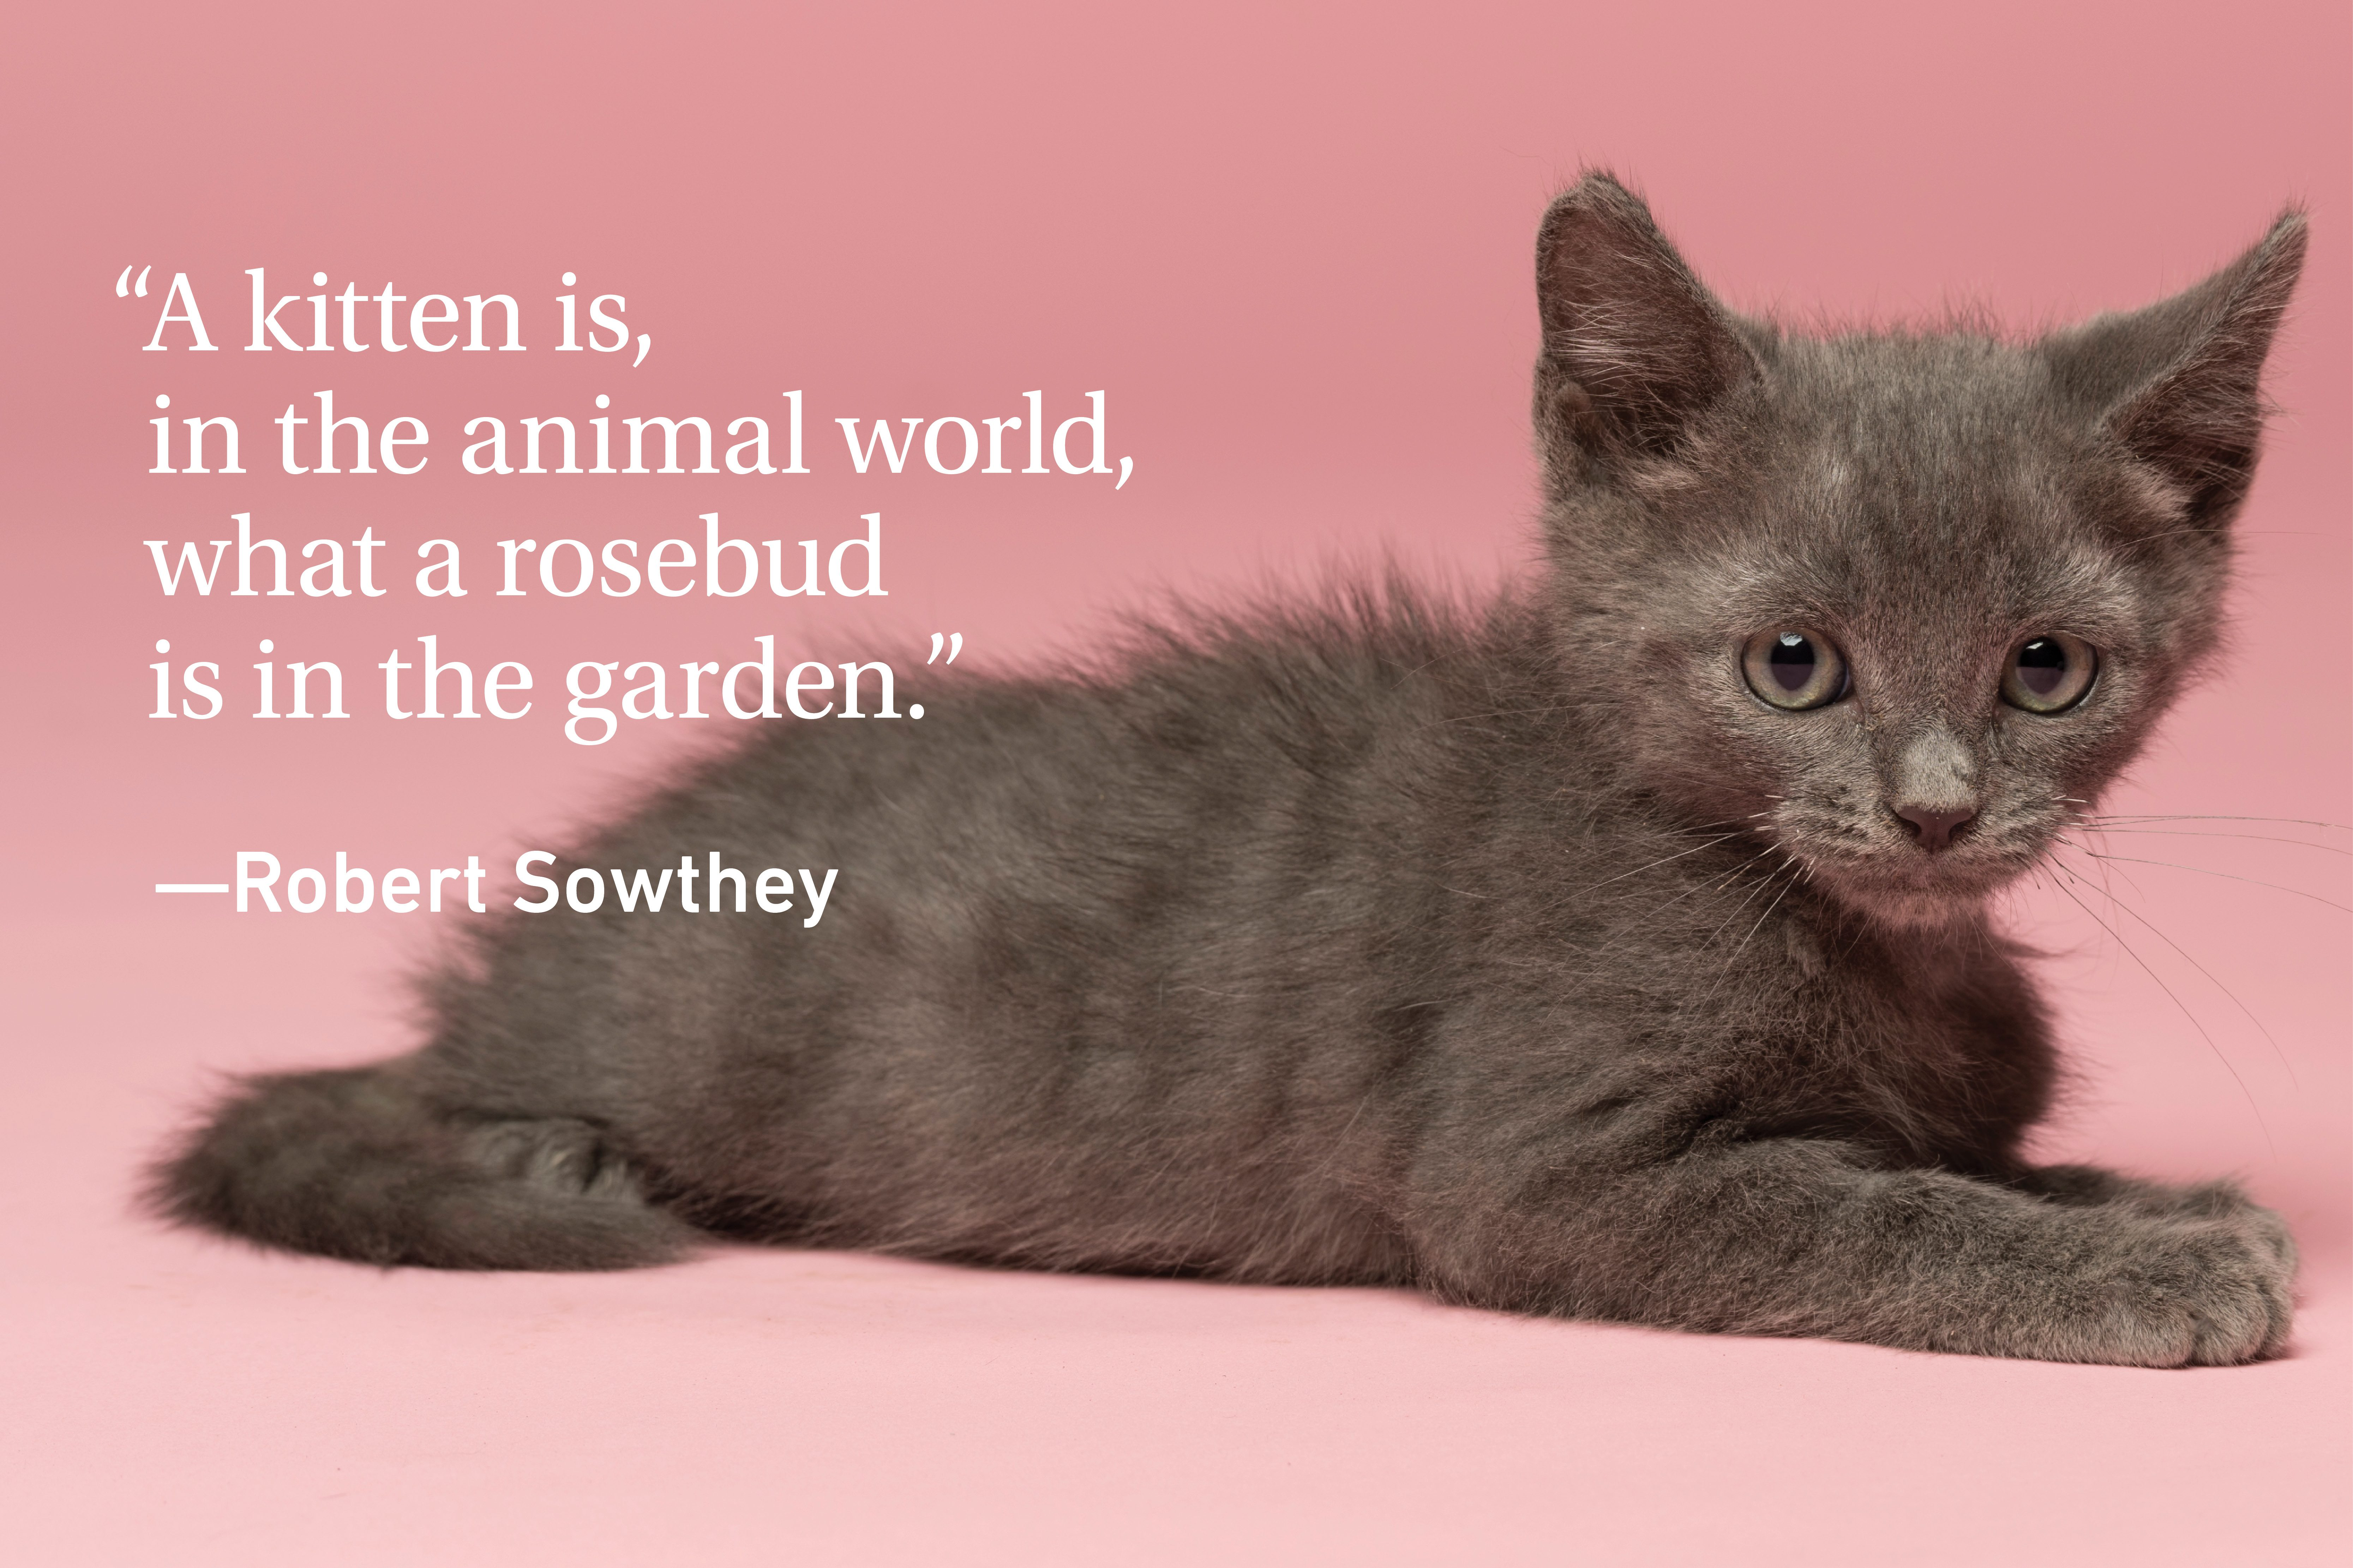 Kitten quote on pink background with a kitten laying down